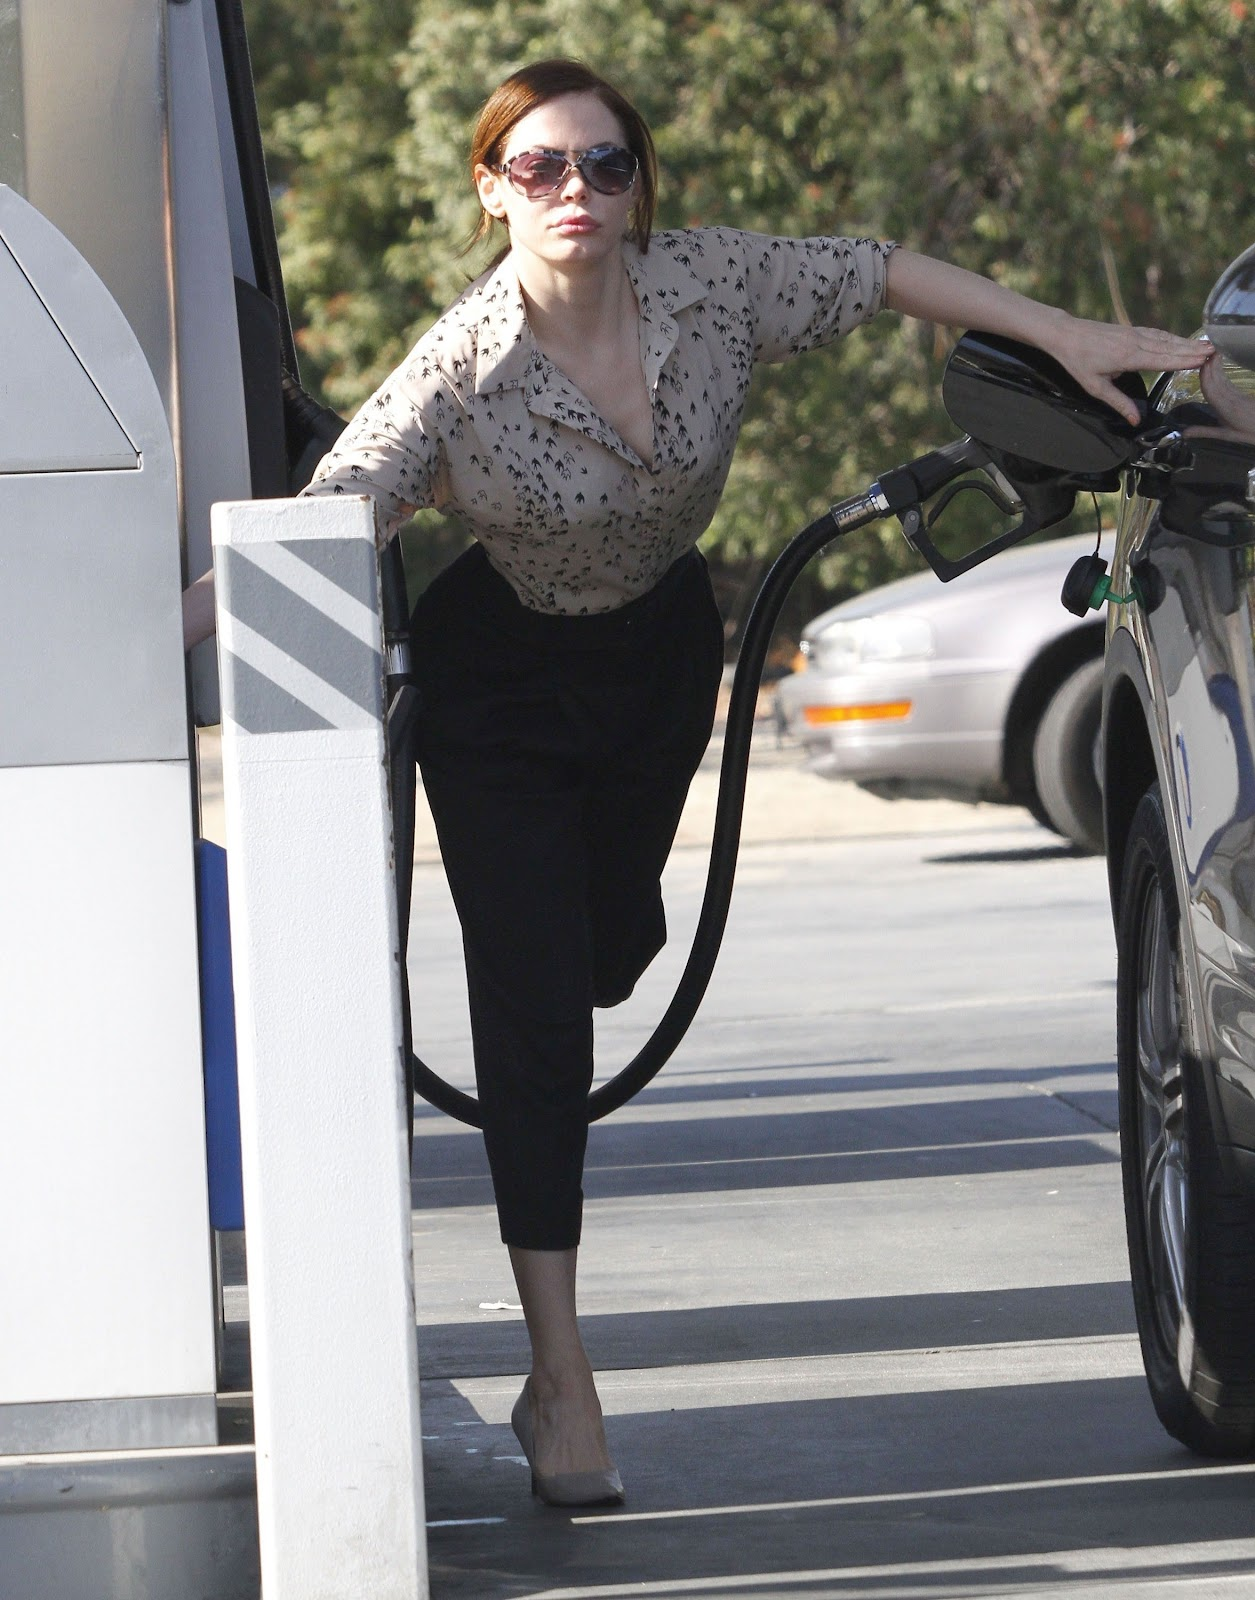 http://1.bp.blogspot.com/-TLbIcxeXsUM/T1jSgL-pnsI/AAAAAAAAA9w/CxESATV9ERM/s1600/Rose+McGowan+pumping+gas+at+a+gas+station+in+Los+Feliz,+March+02,+2012.jpg